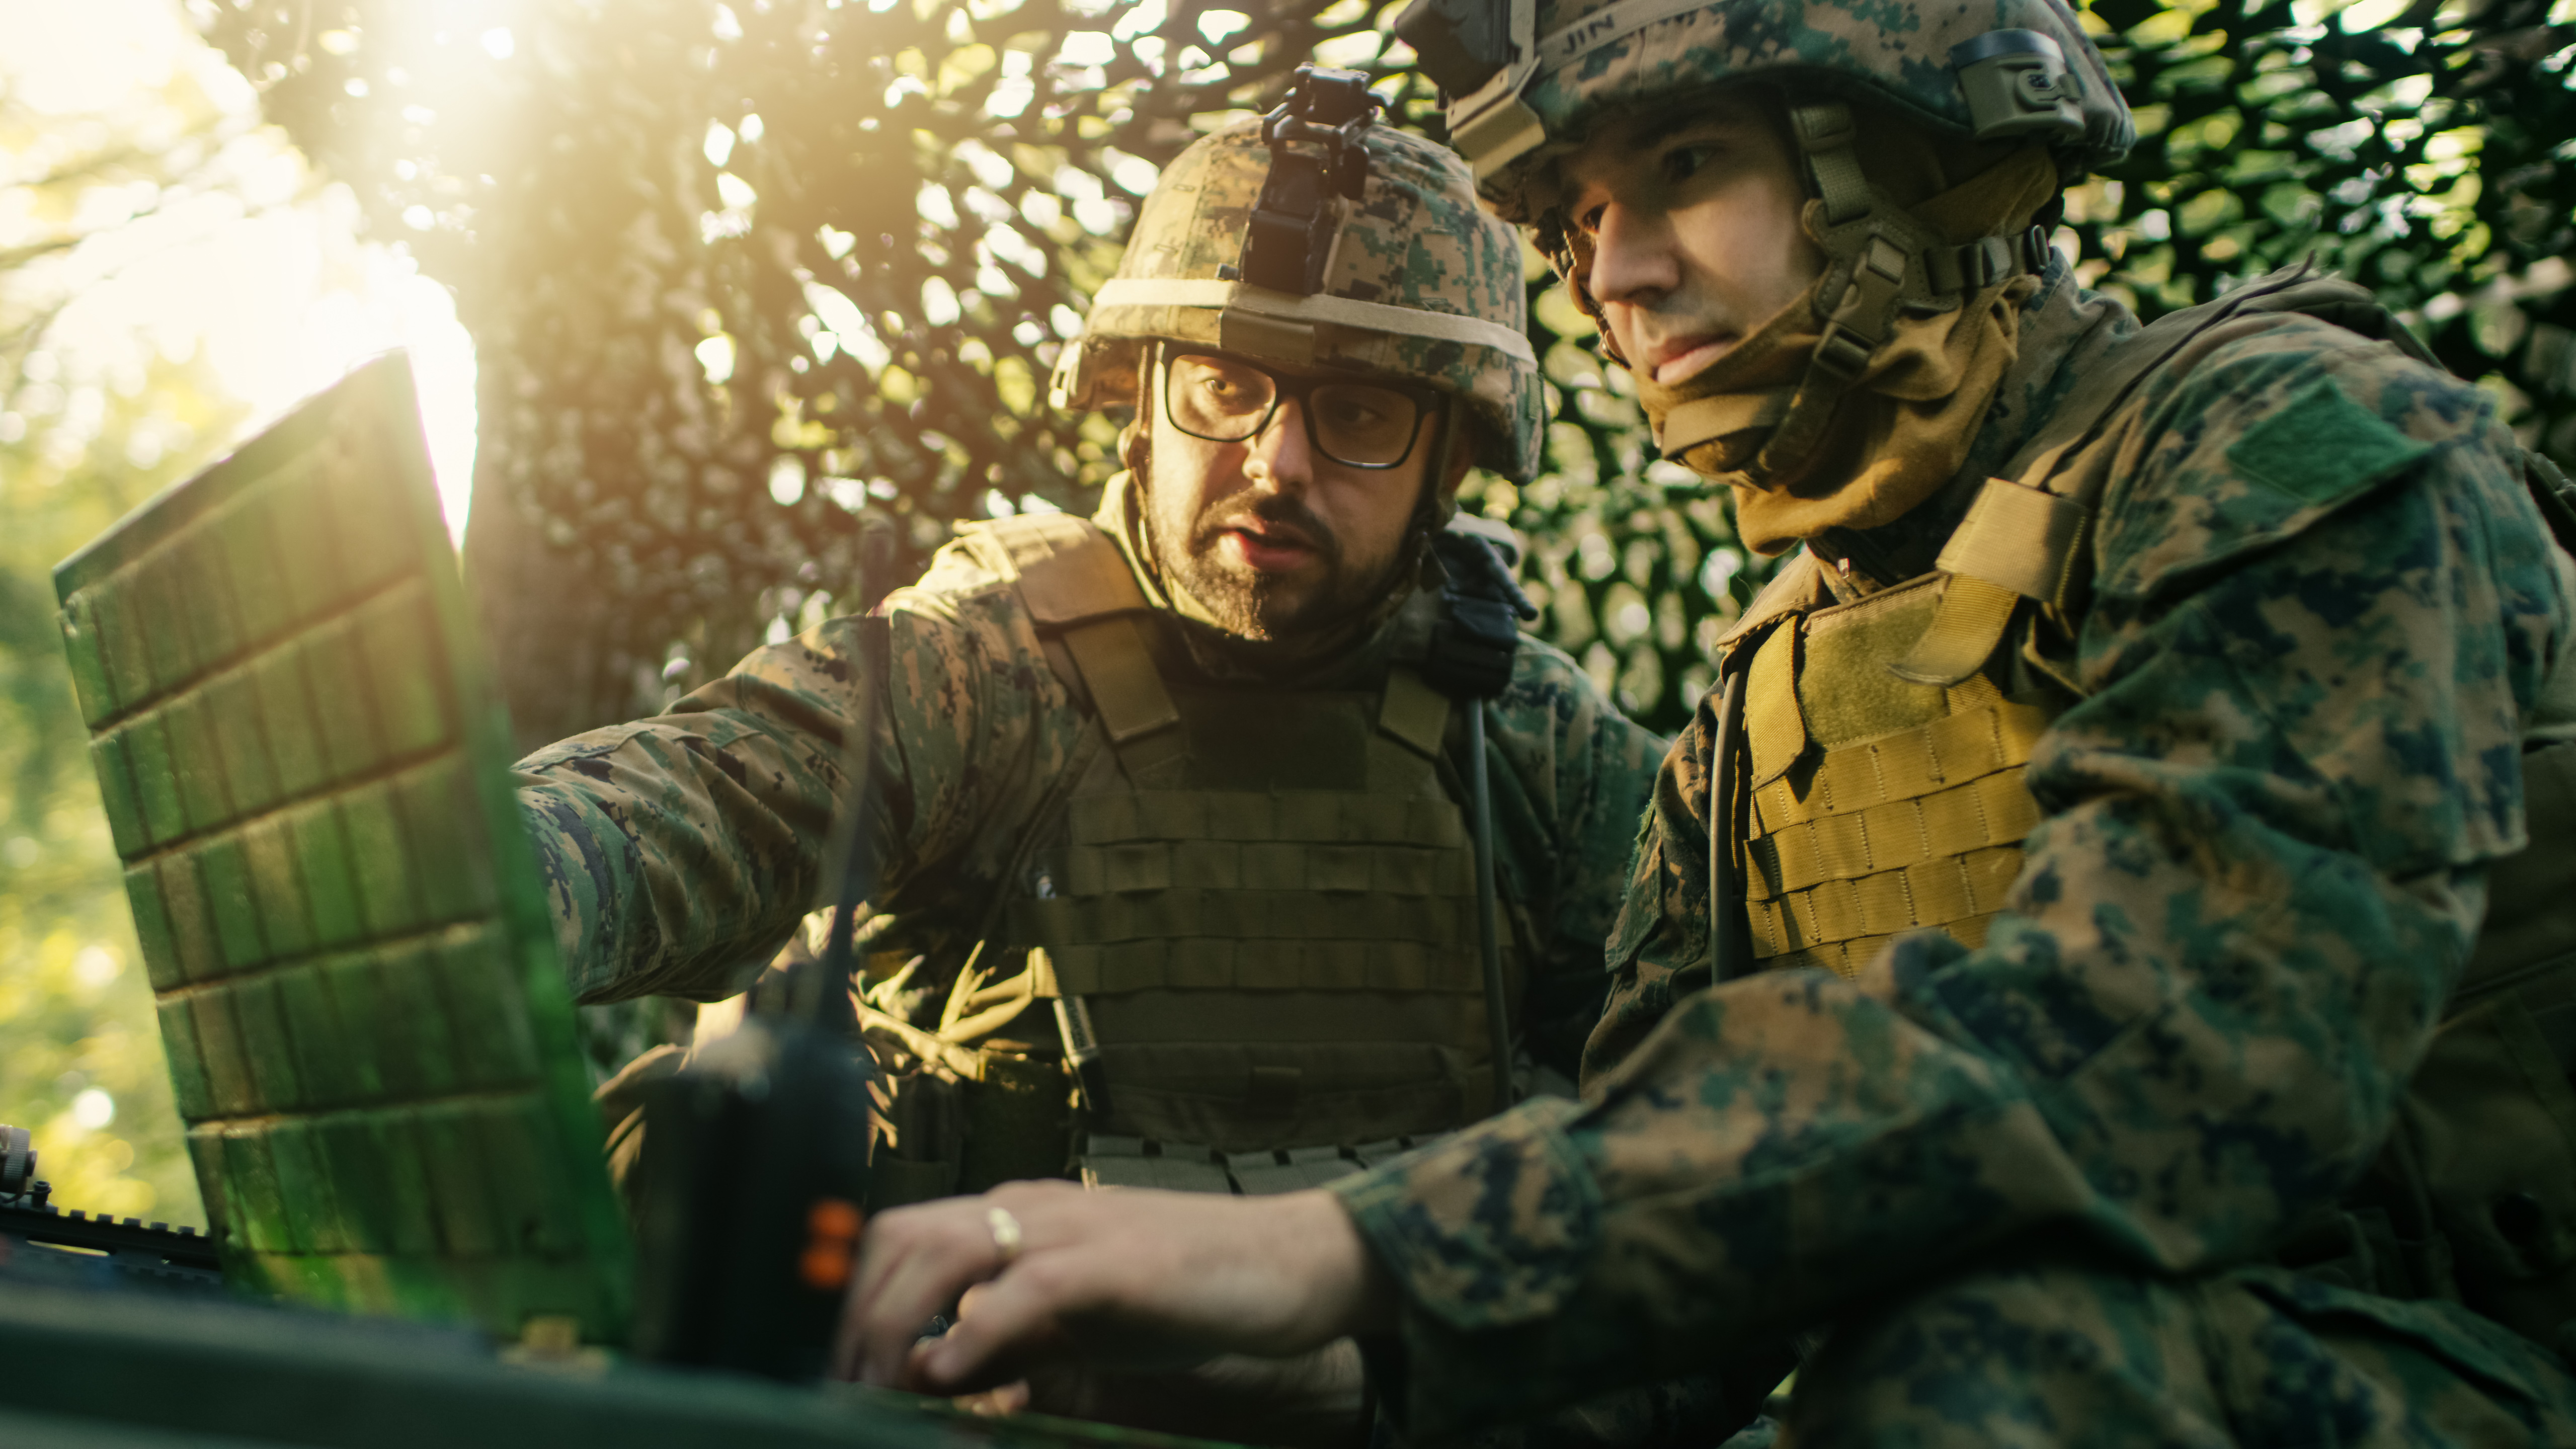 What Are the Duties of a Soldier in the Army? | Career Trend